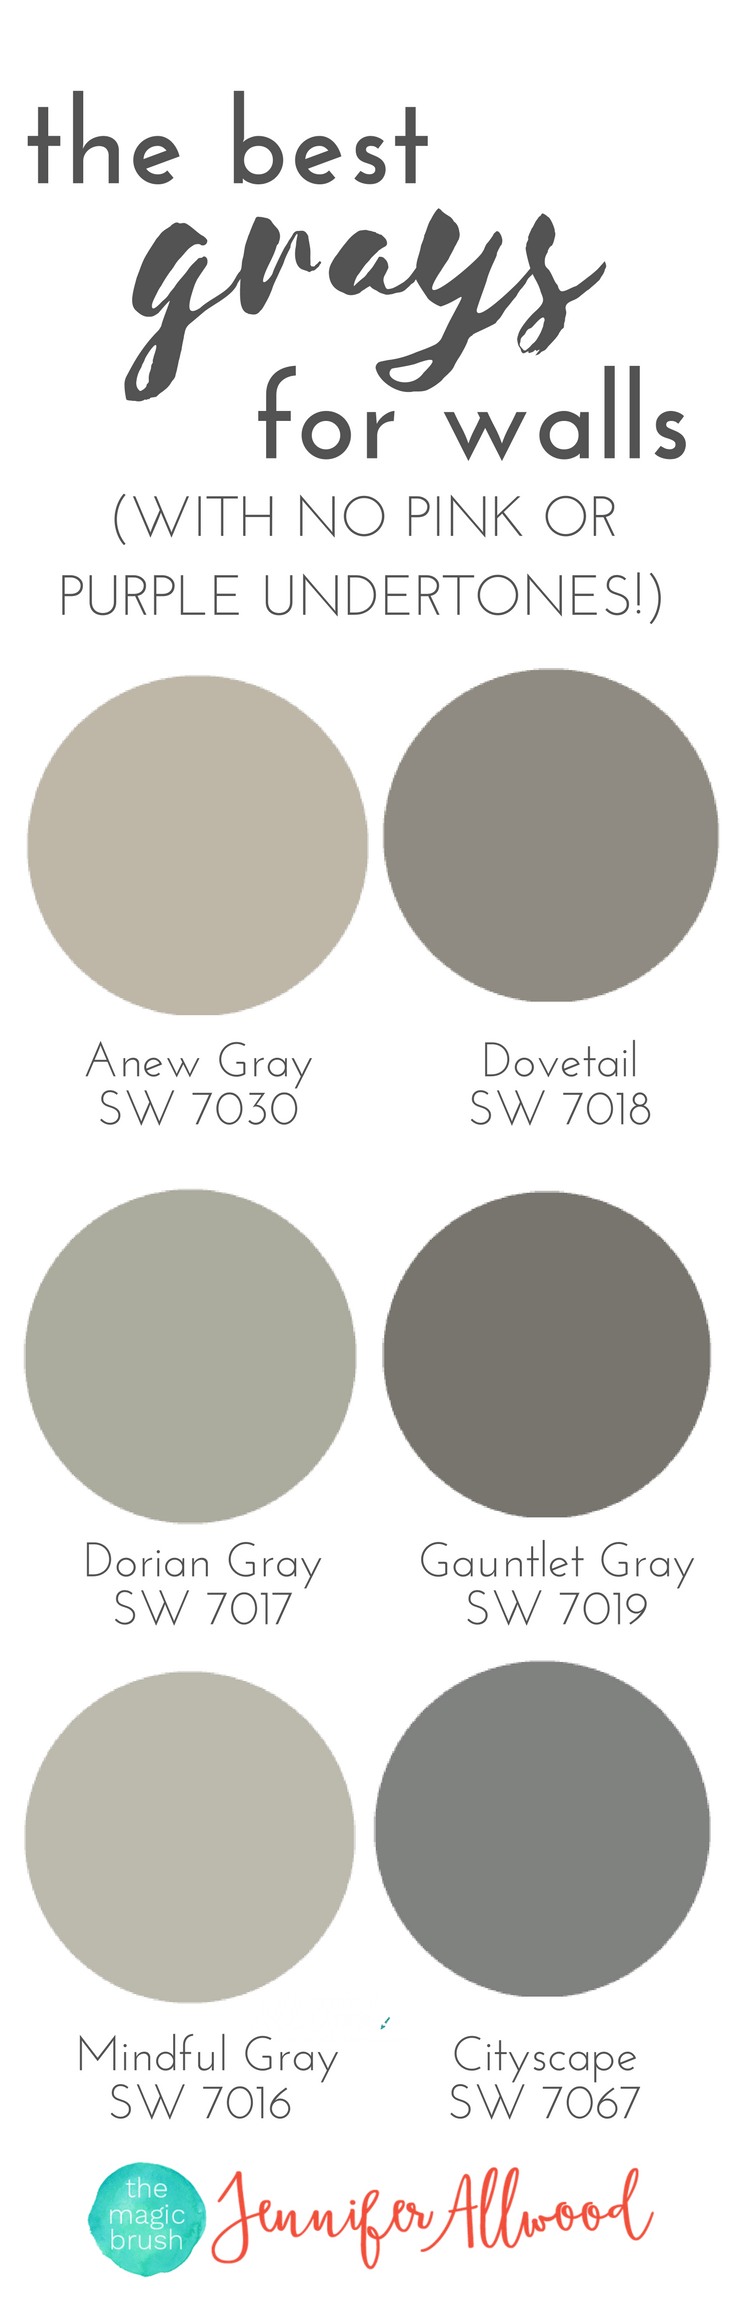 the best Gray Paint Colors for walls with no pink or